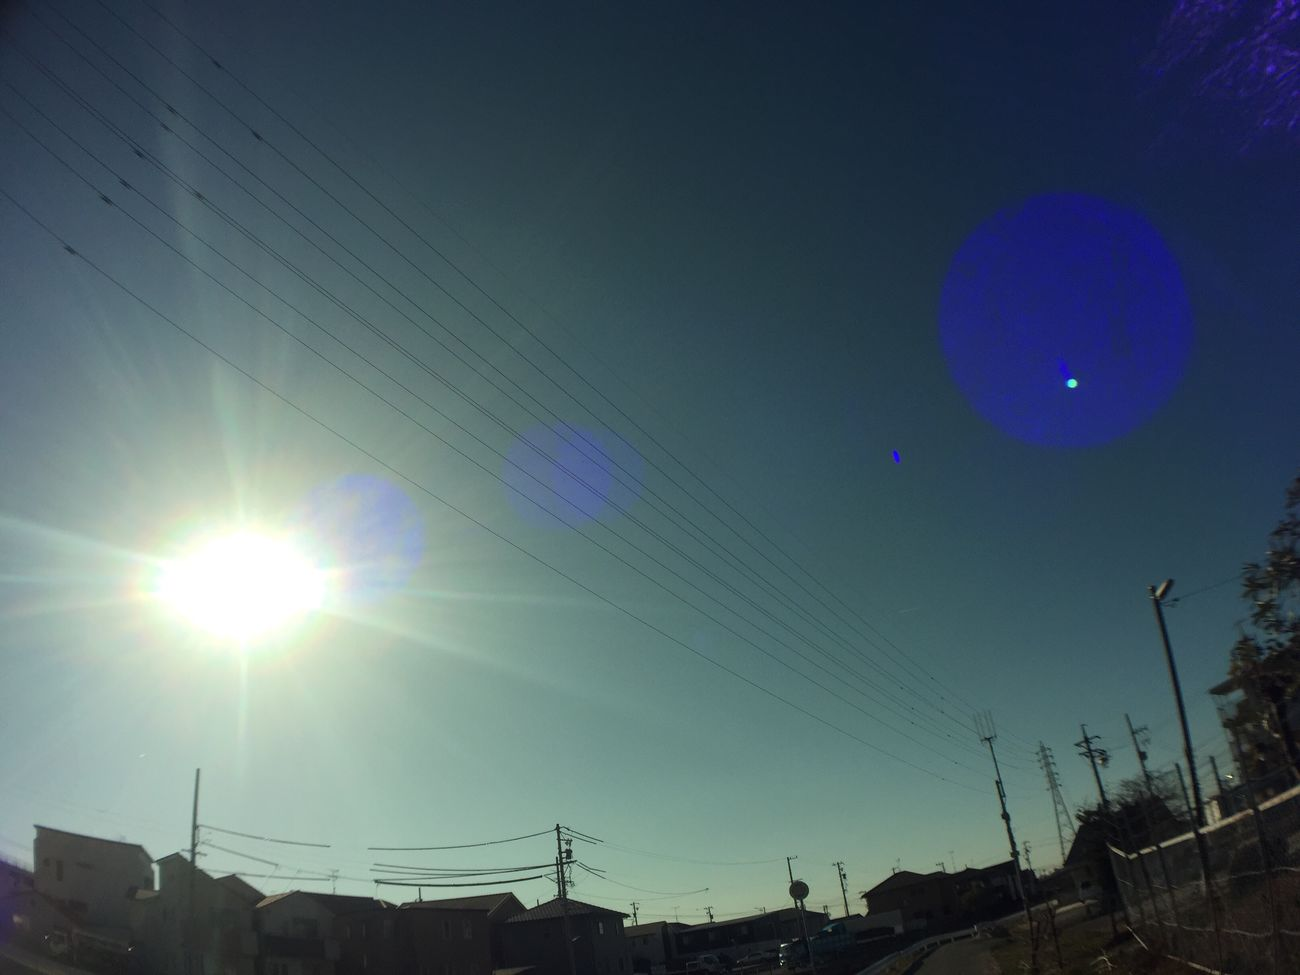 Lens Flare Sun Sunlight Sky Sunbeam 空 太陽 光 電線 Electric Wires